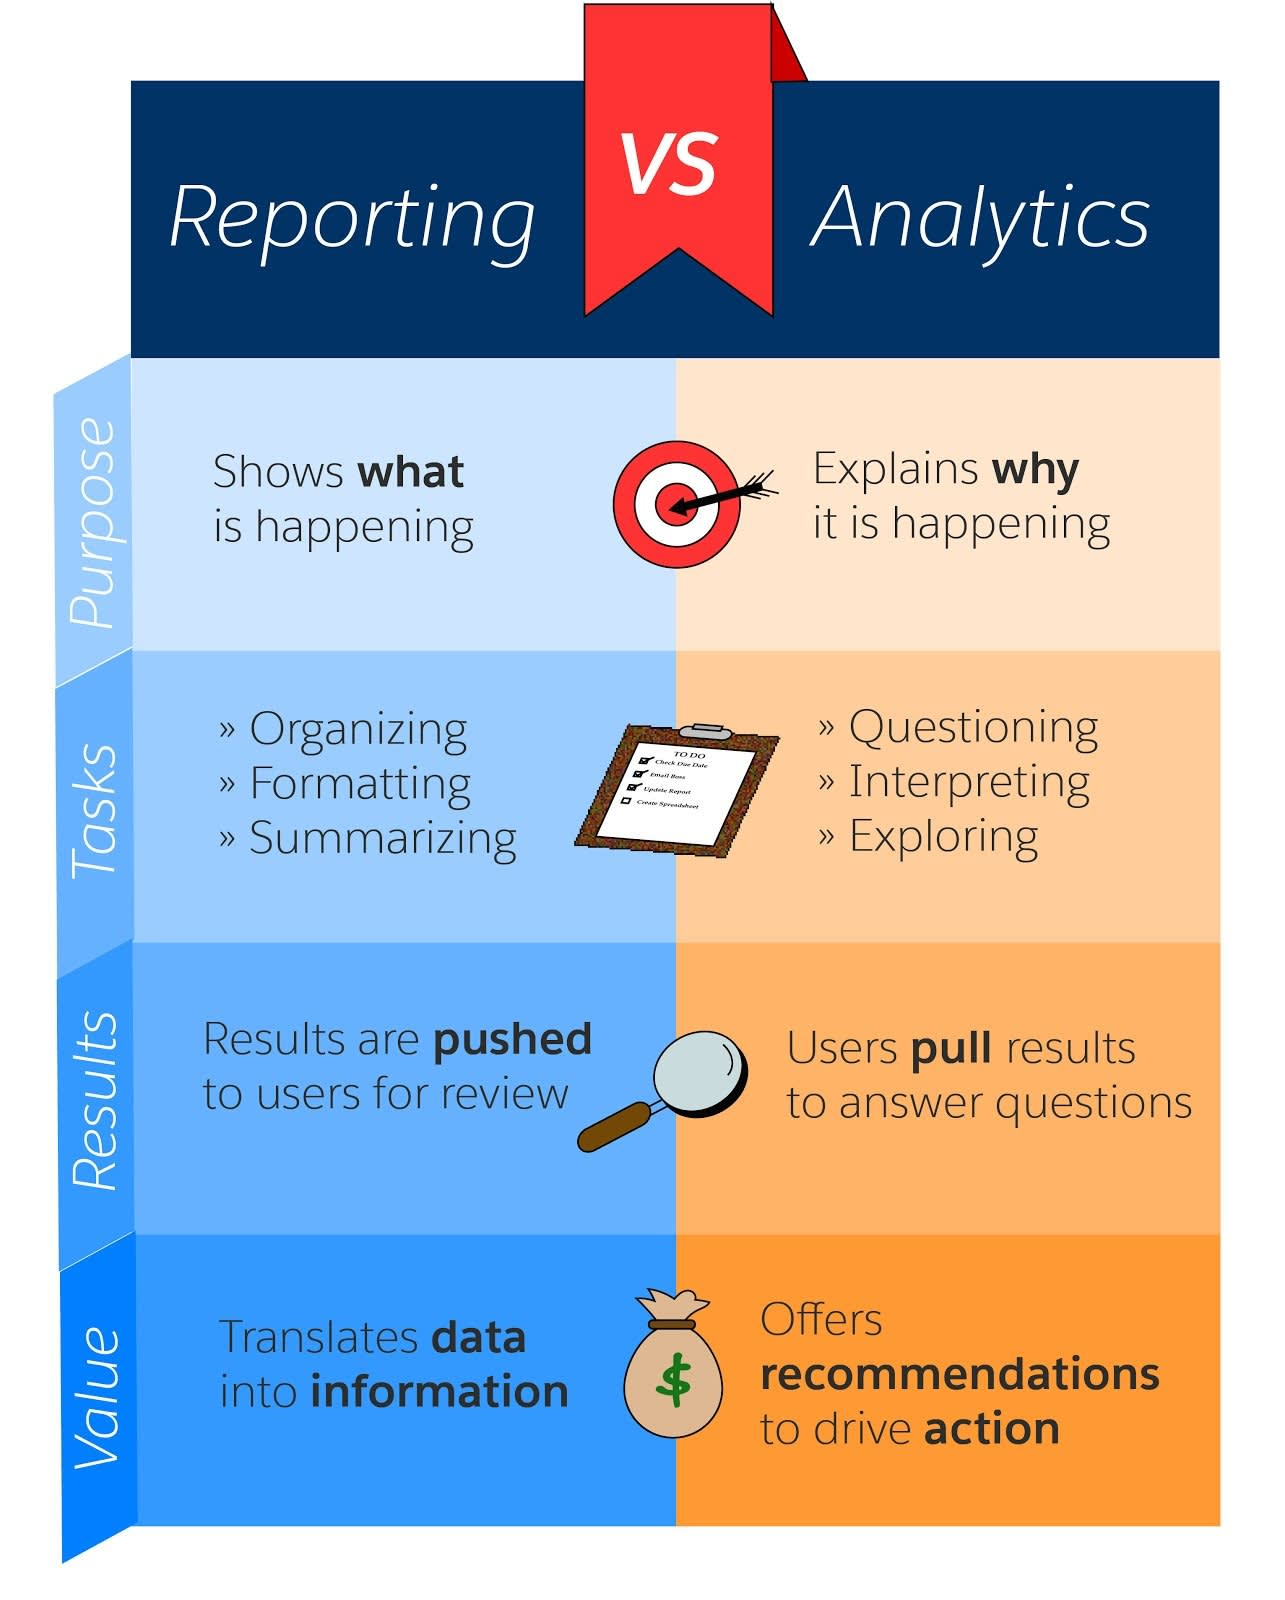 Reporting vs Analytics chart. Purpose of Reporting: Shows what is happening. Purpose of Analytics: Explains why it is happening. Tasks for Reporting: Organizing, Formatting, Summarizing. Tasks for Analytics: Questions, Interpreting, Exploring. Results for Reporting: Results are pushed to users for review. Results for Analytics: Users pull results to answer questions. Value of Reporting: Data into transformation. Value for Analytics: Offers recommendations to drive action.